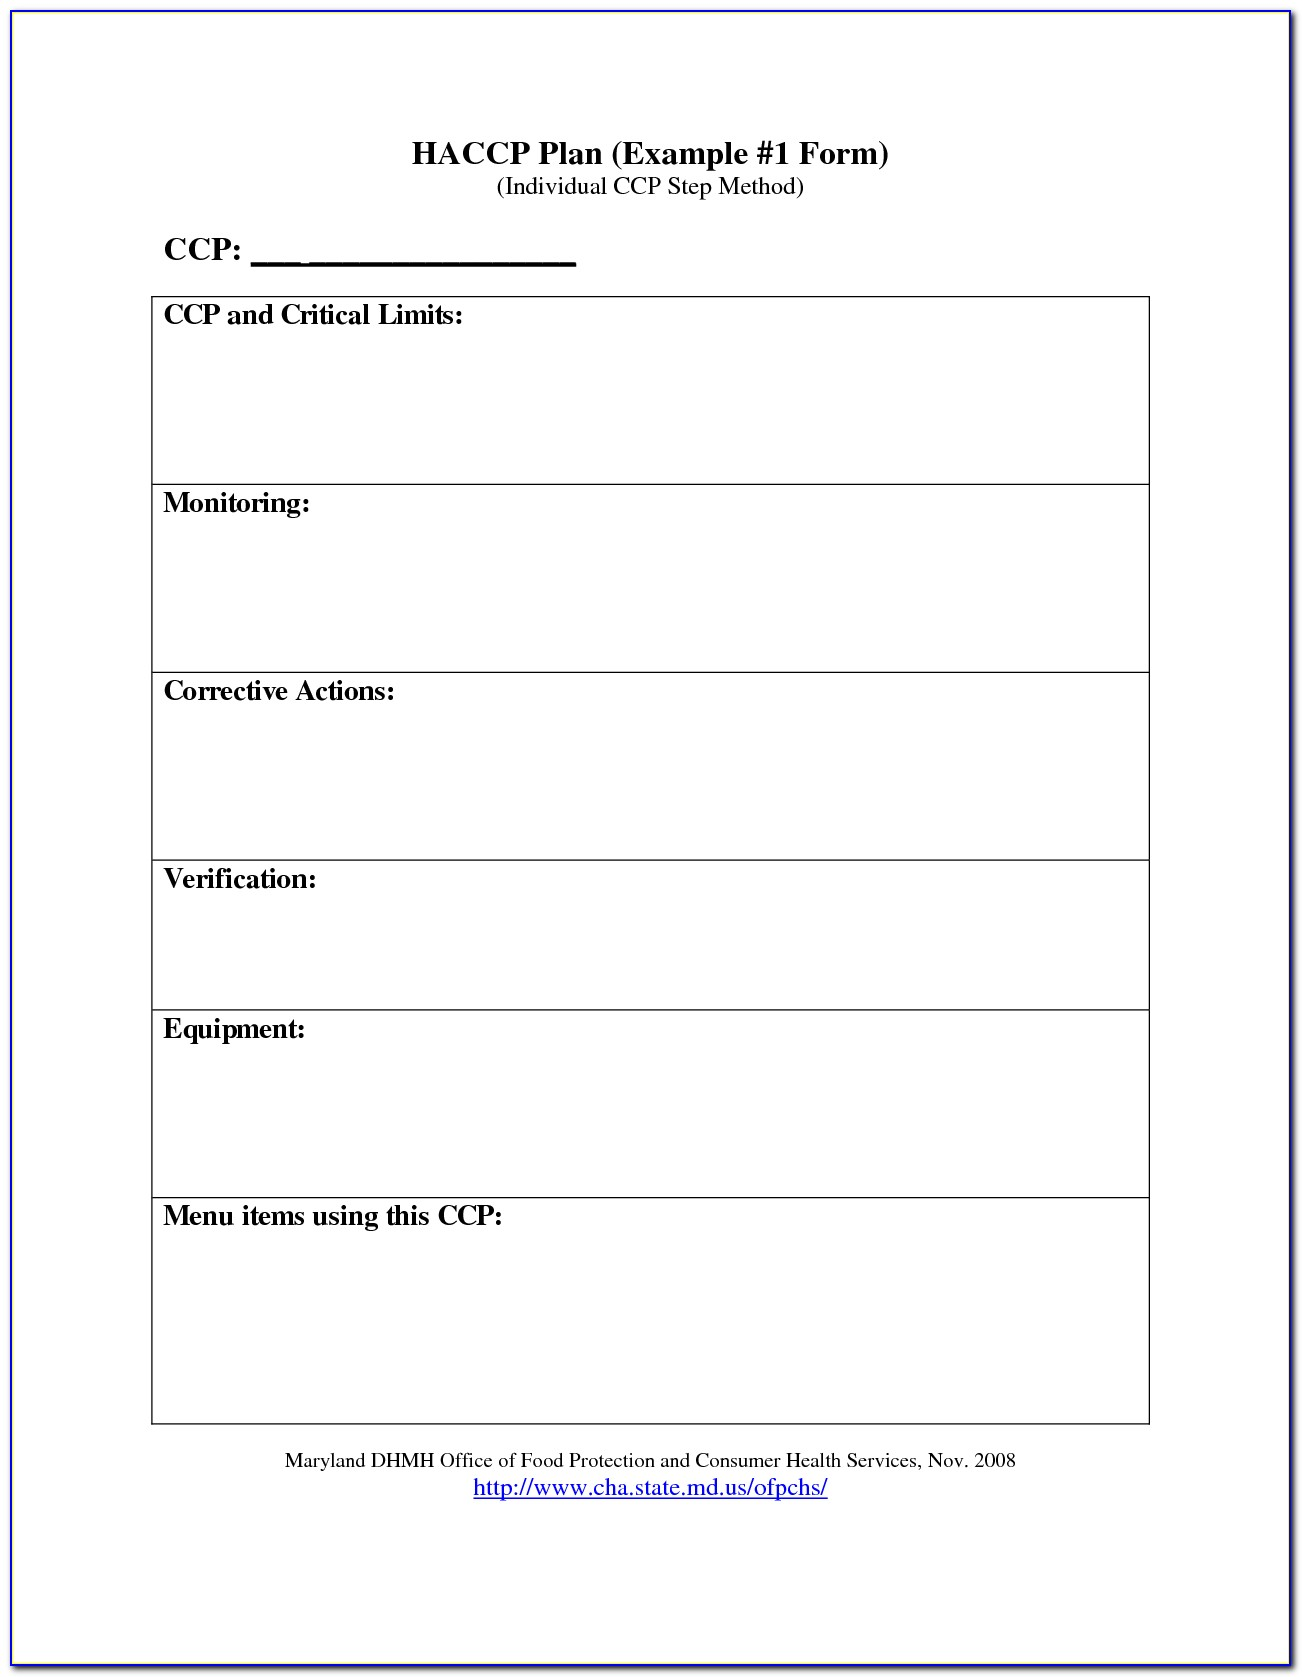 Haccp Plan Template Maryland